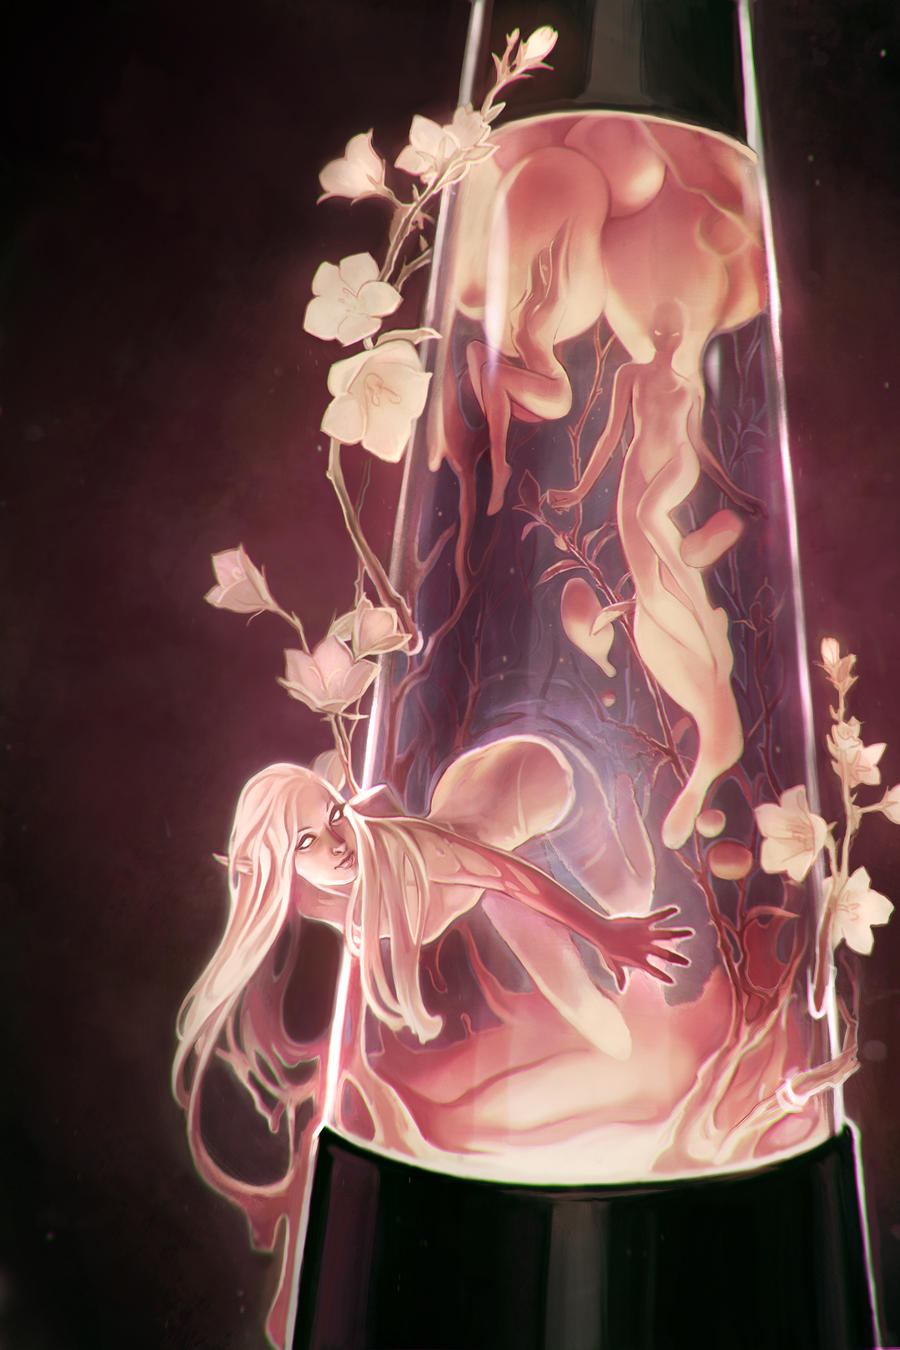 Lava lamp by beagifted on deviantart for Cool fantasy drawings